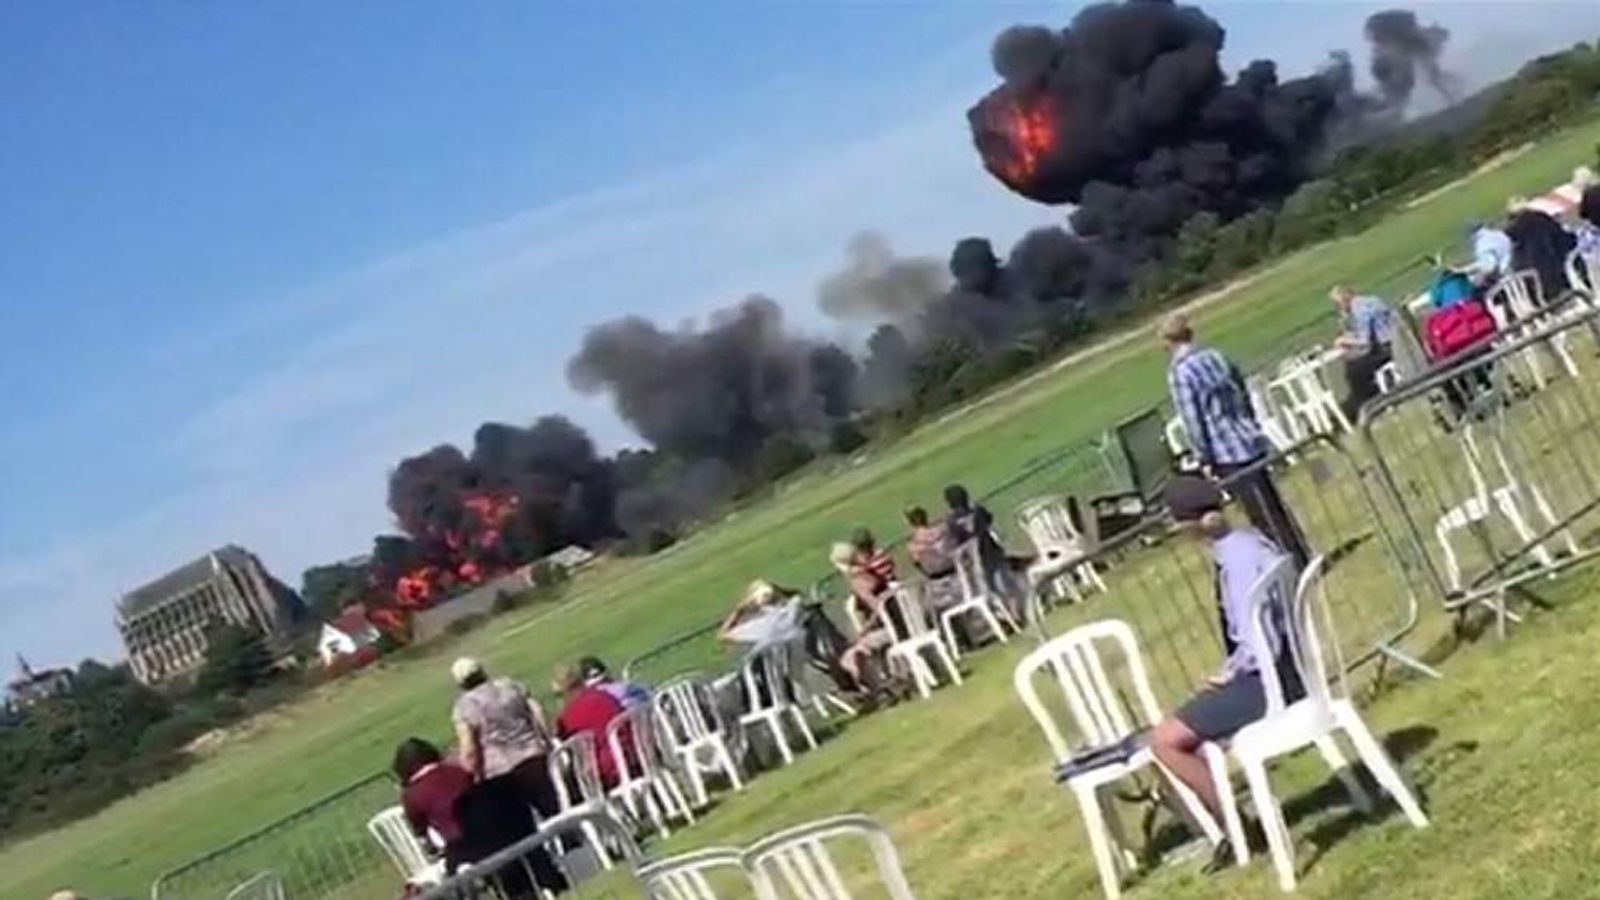 Plane Crashes At Shoreham Airshow.